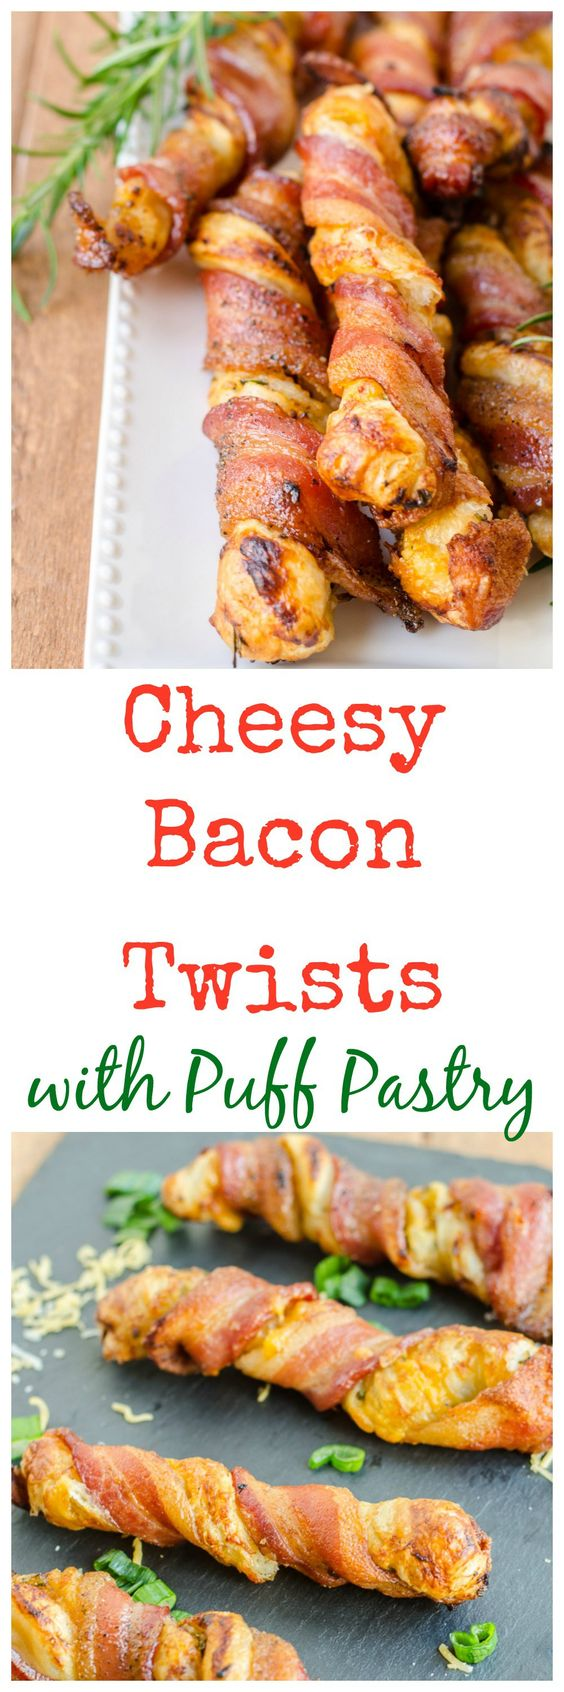 Puff pastries, Pastries and Puff pastry dough on Pinterest